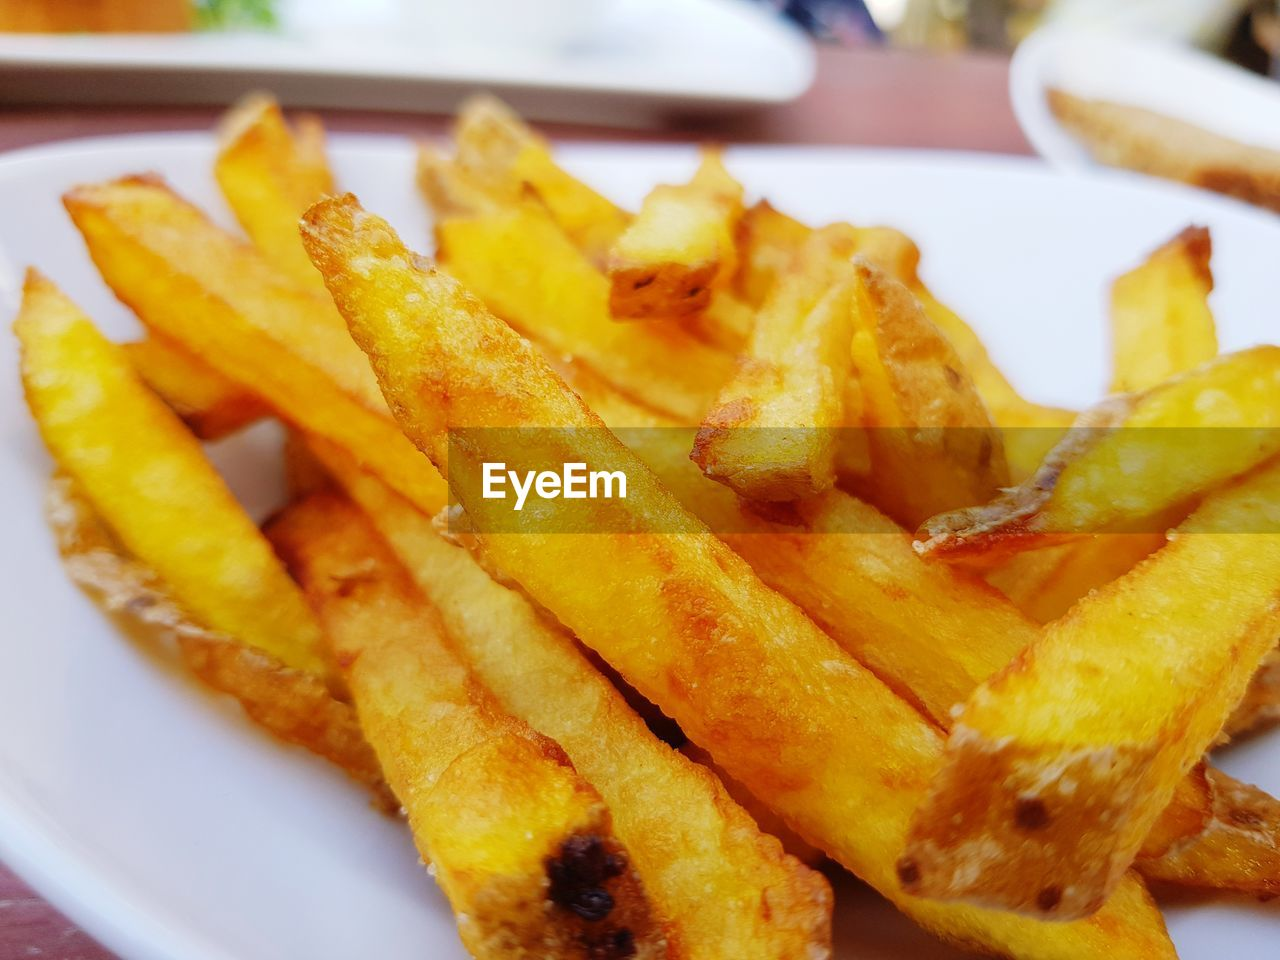 french fries, prepared potato, food, potato, ready-to-eat, food and drink, unhealthy eating, fried, close-up, freshness, fast food, deep fried, indoors, yellow, still life, no people, plate, serving size, snack, focus on foreground, fast food french fries, temptation, paper plate, comfort food